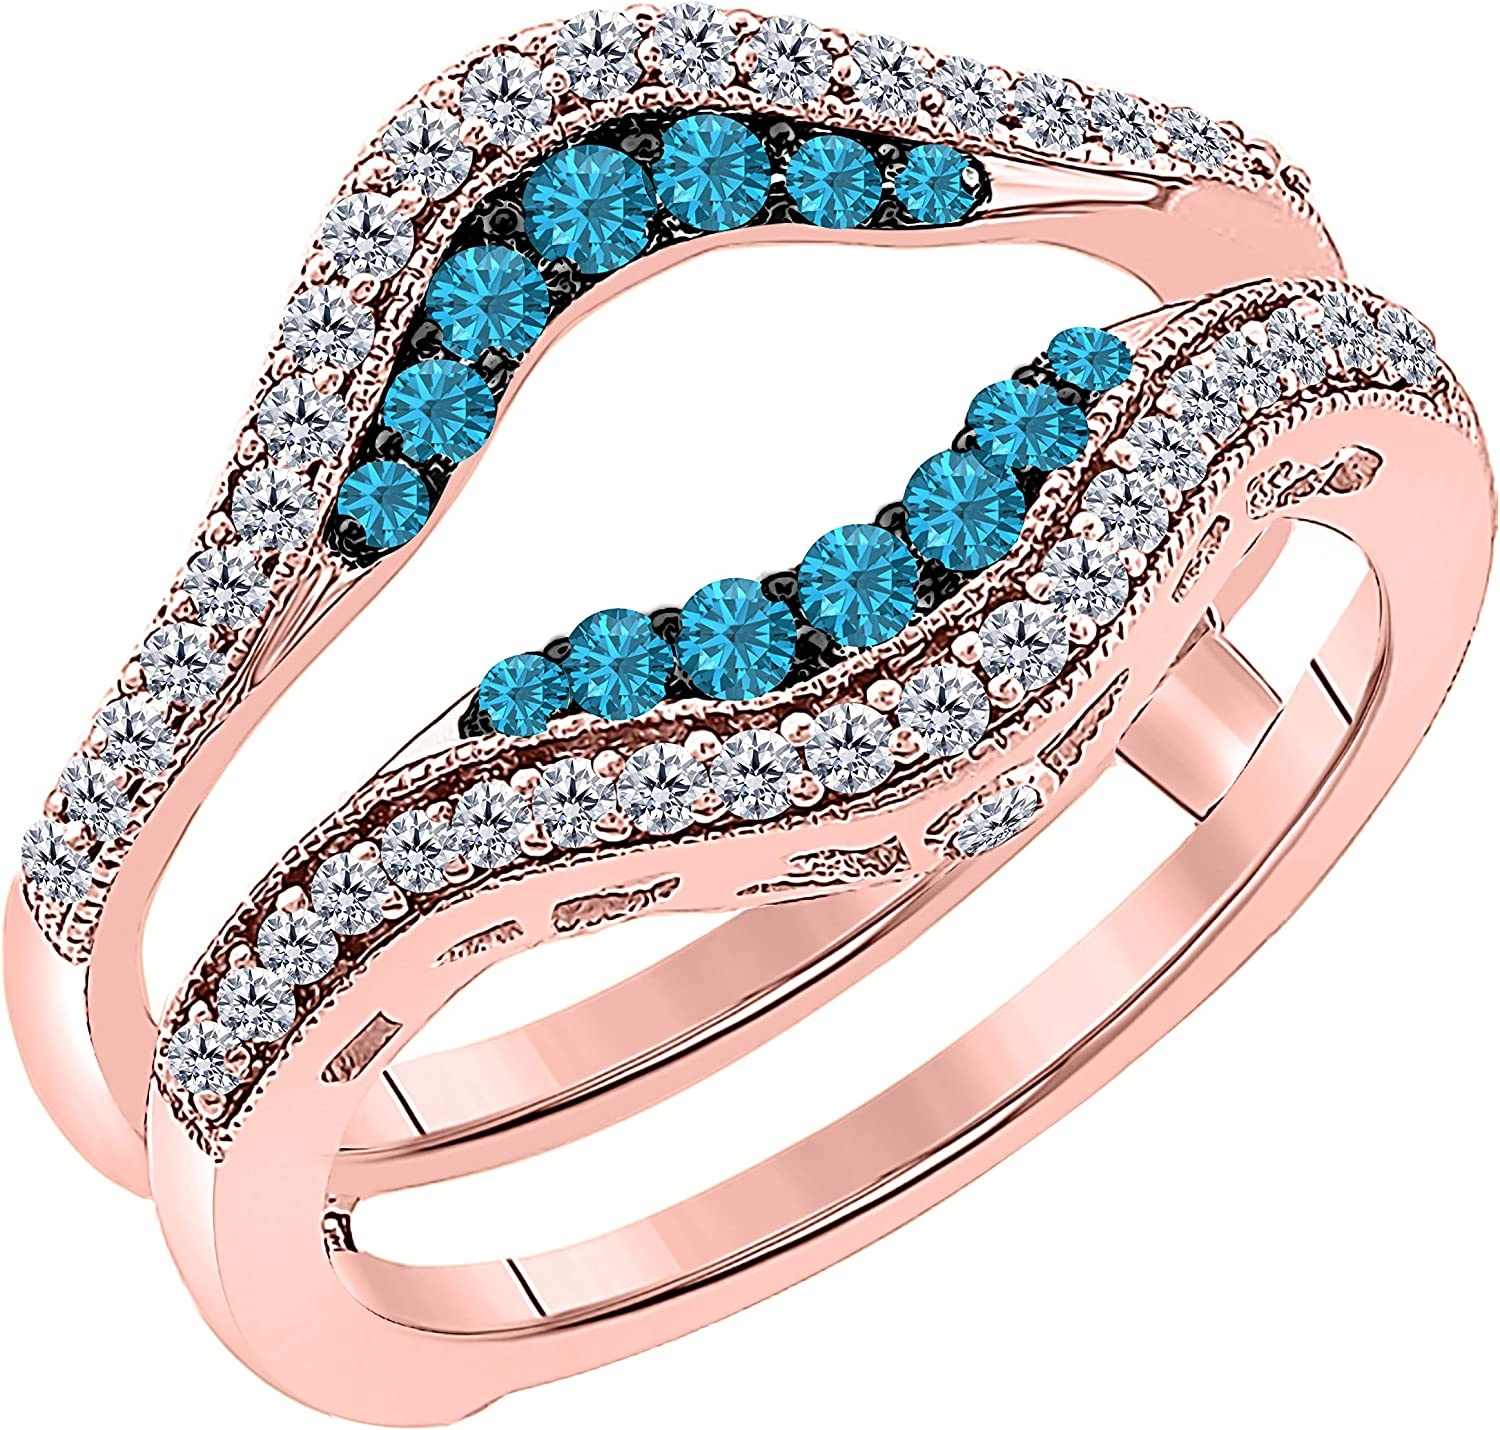 ctw CZ Blue Topaz /& Cubic Zirconia Round Wedding Band Solitaire Enhancer Guard Wrap Ring Womens 14k Rose Gold Plated Alloy Double Row Pave Set 0.50